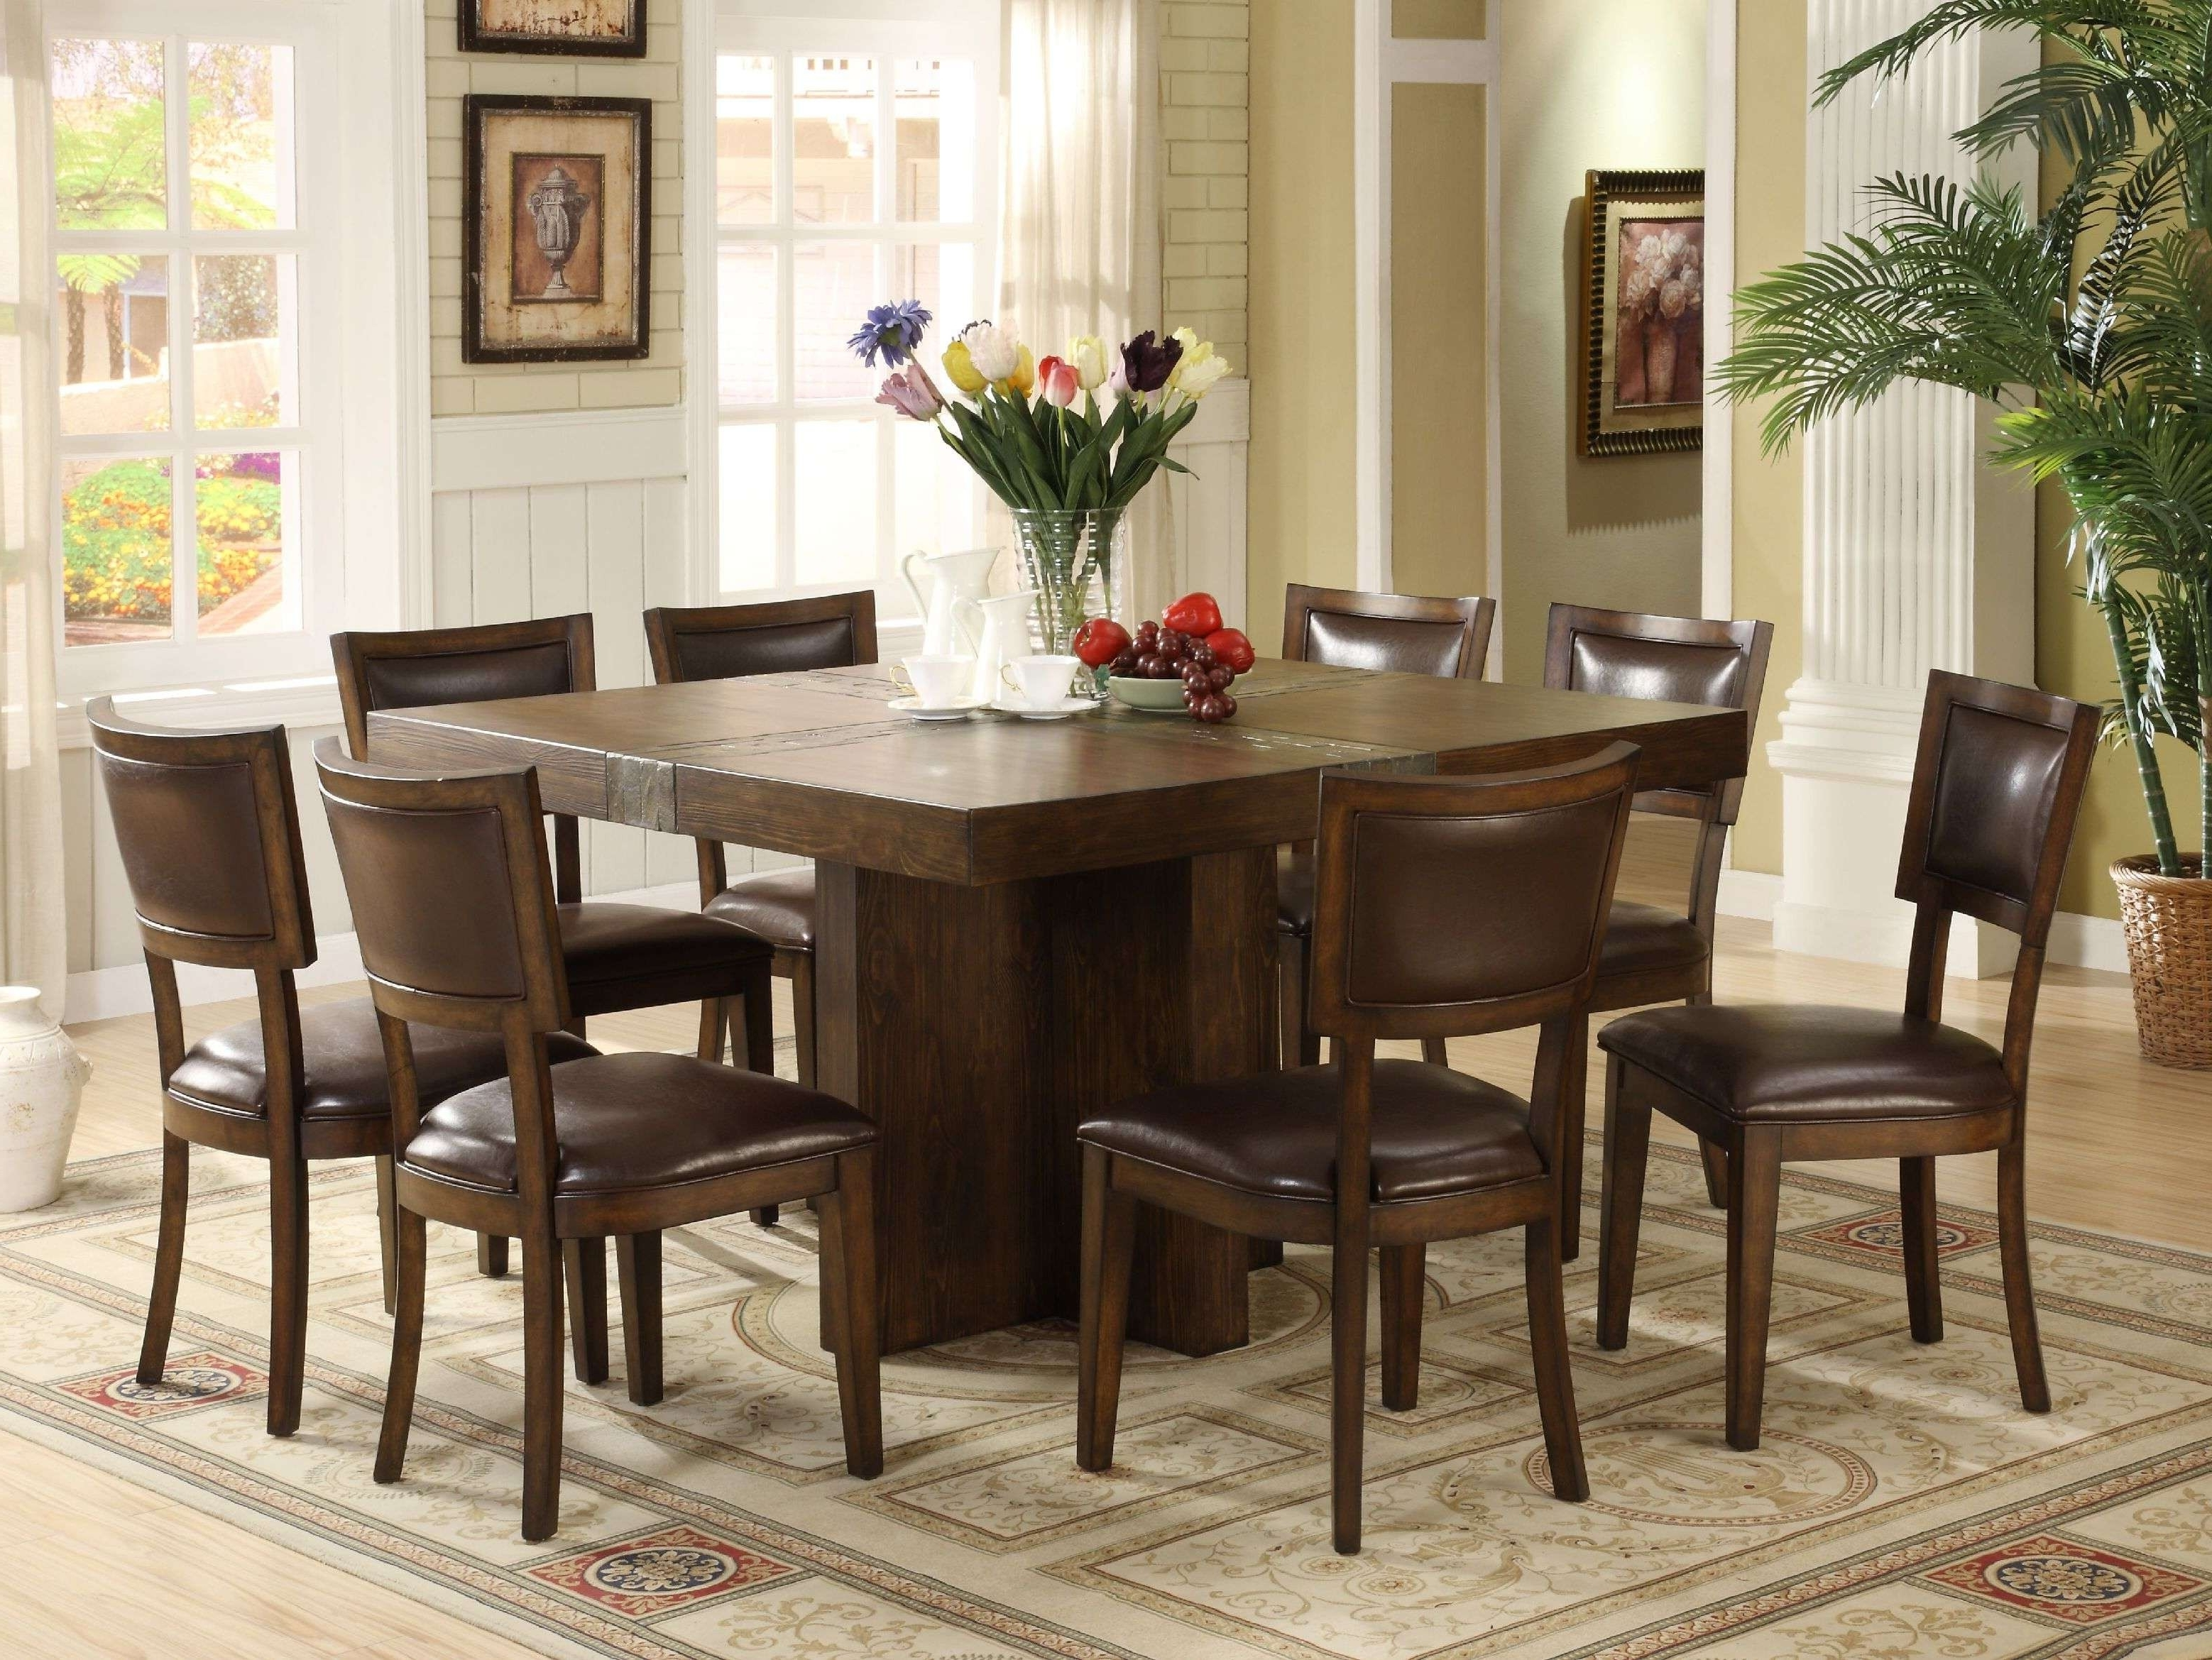 Current 8 Seater Round Dining Table And Chairs With Regard To Round Dining Tables For 8 Fresh Best 8 Seater Dining Table Set (View 10 of 25)